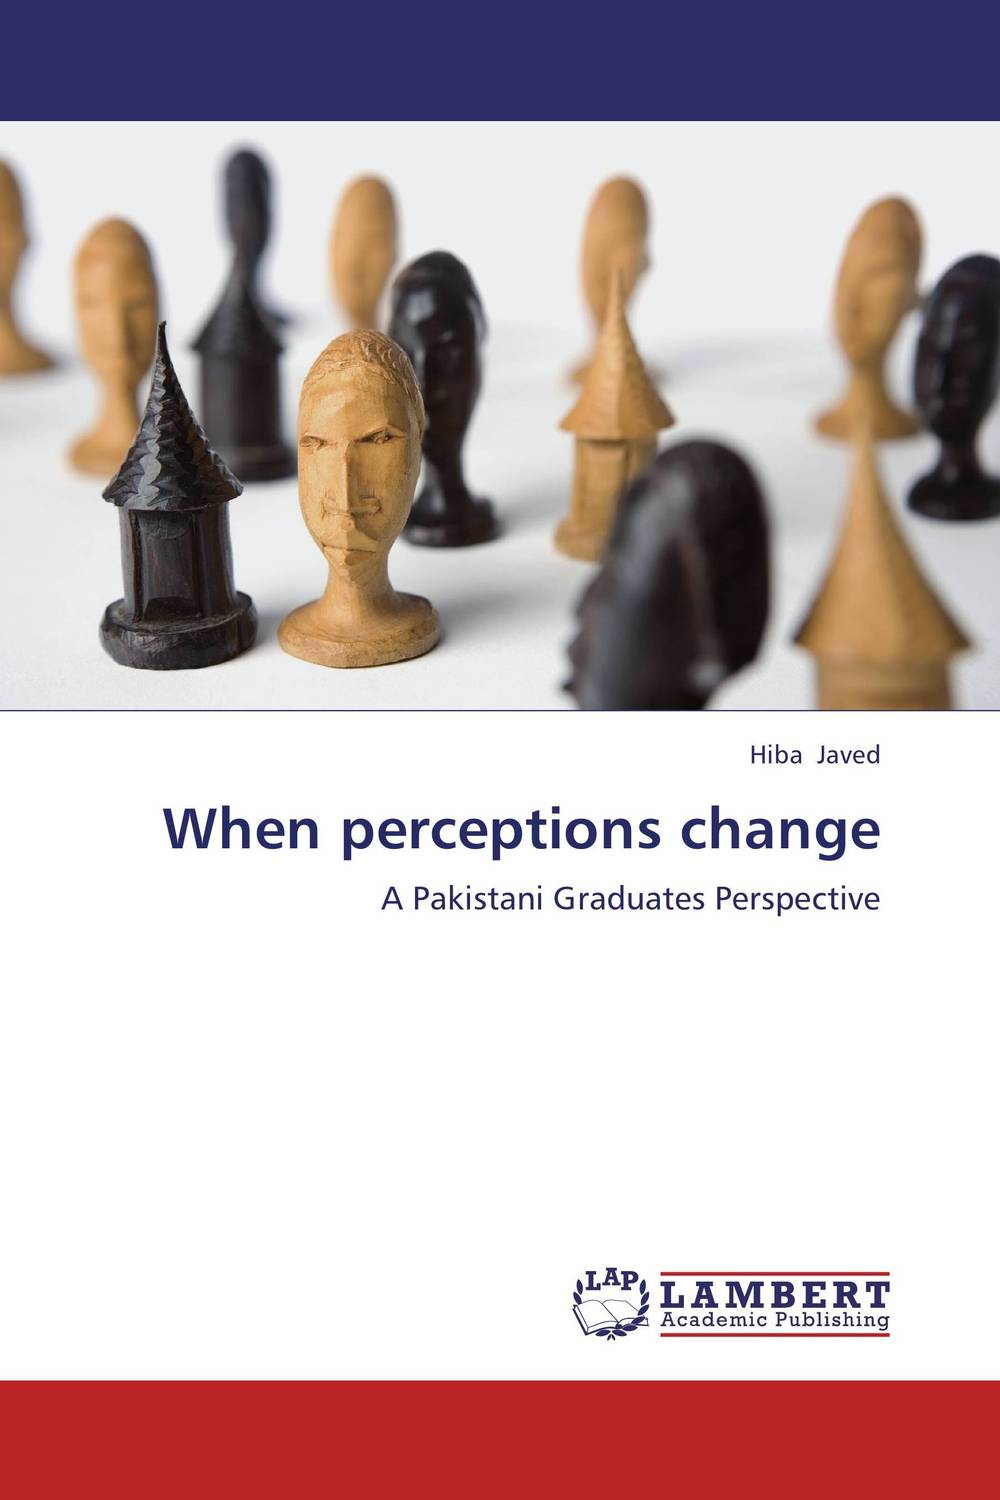 When perceptions change technology based employee training and organizational performance